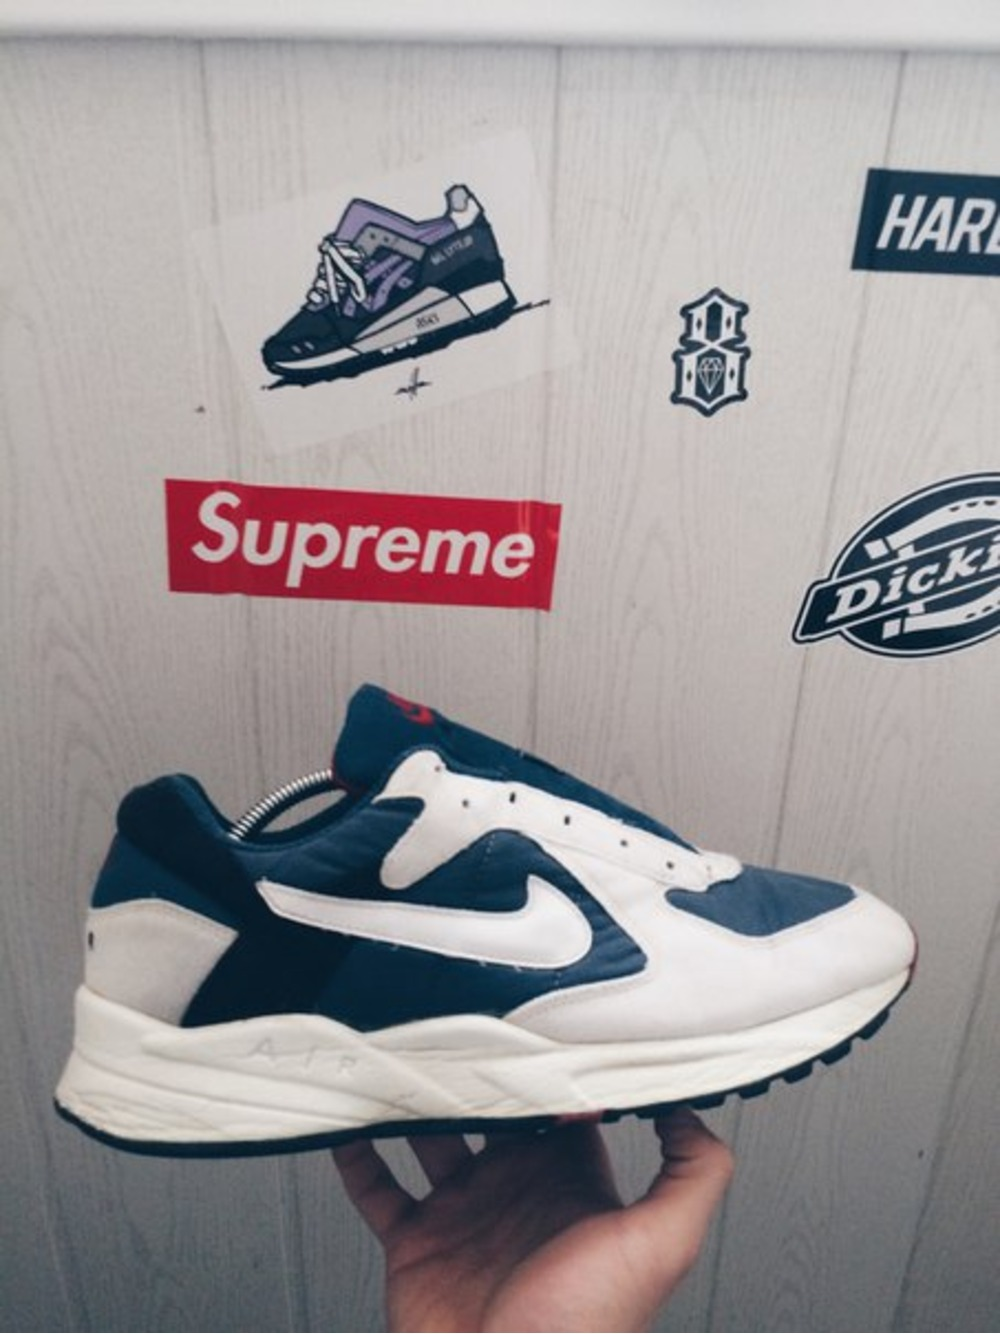 new arrival 953ff be905 nike air icarus 1993